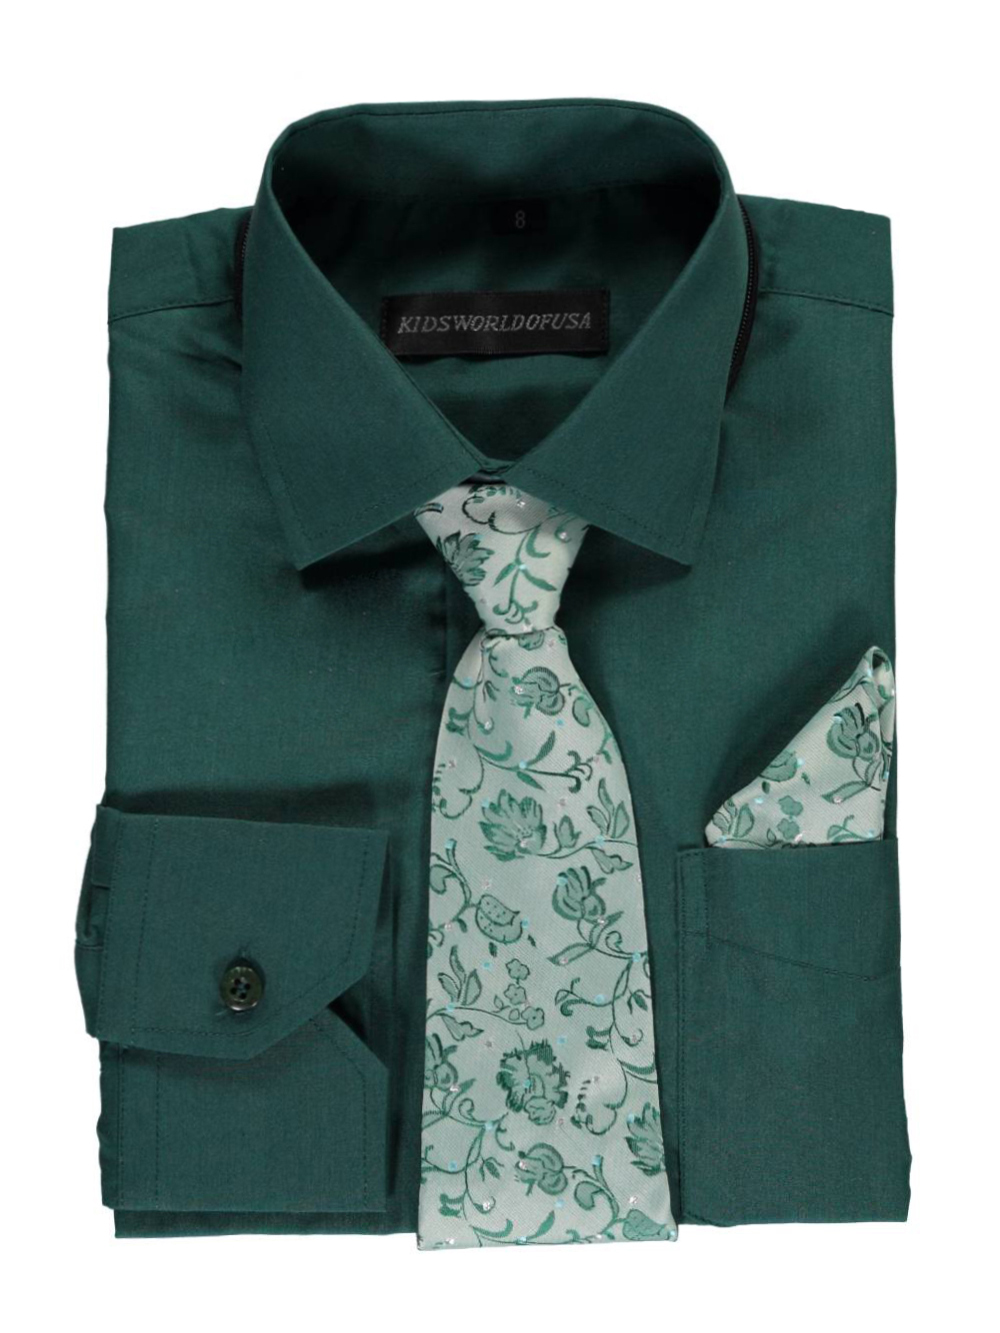 Kids World Big Boys' Dress Shirt with Accessories (Sizes 8 - 20) - emerald, 12